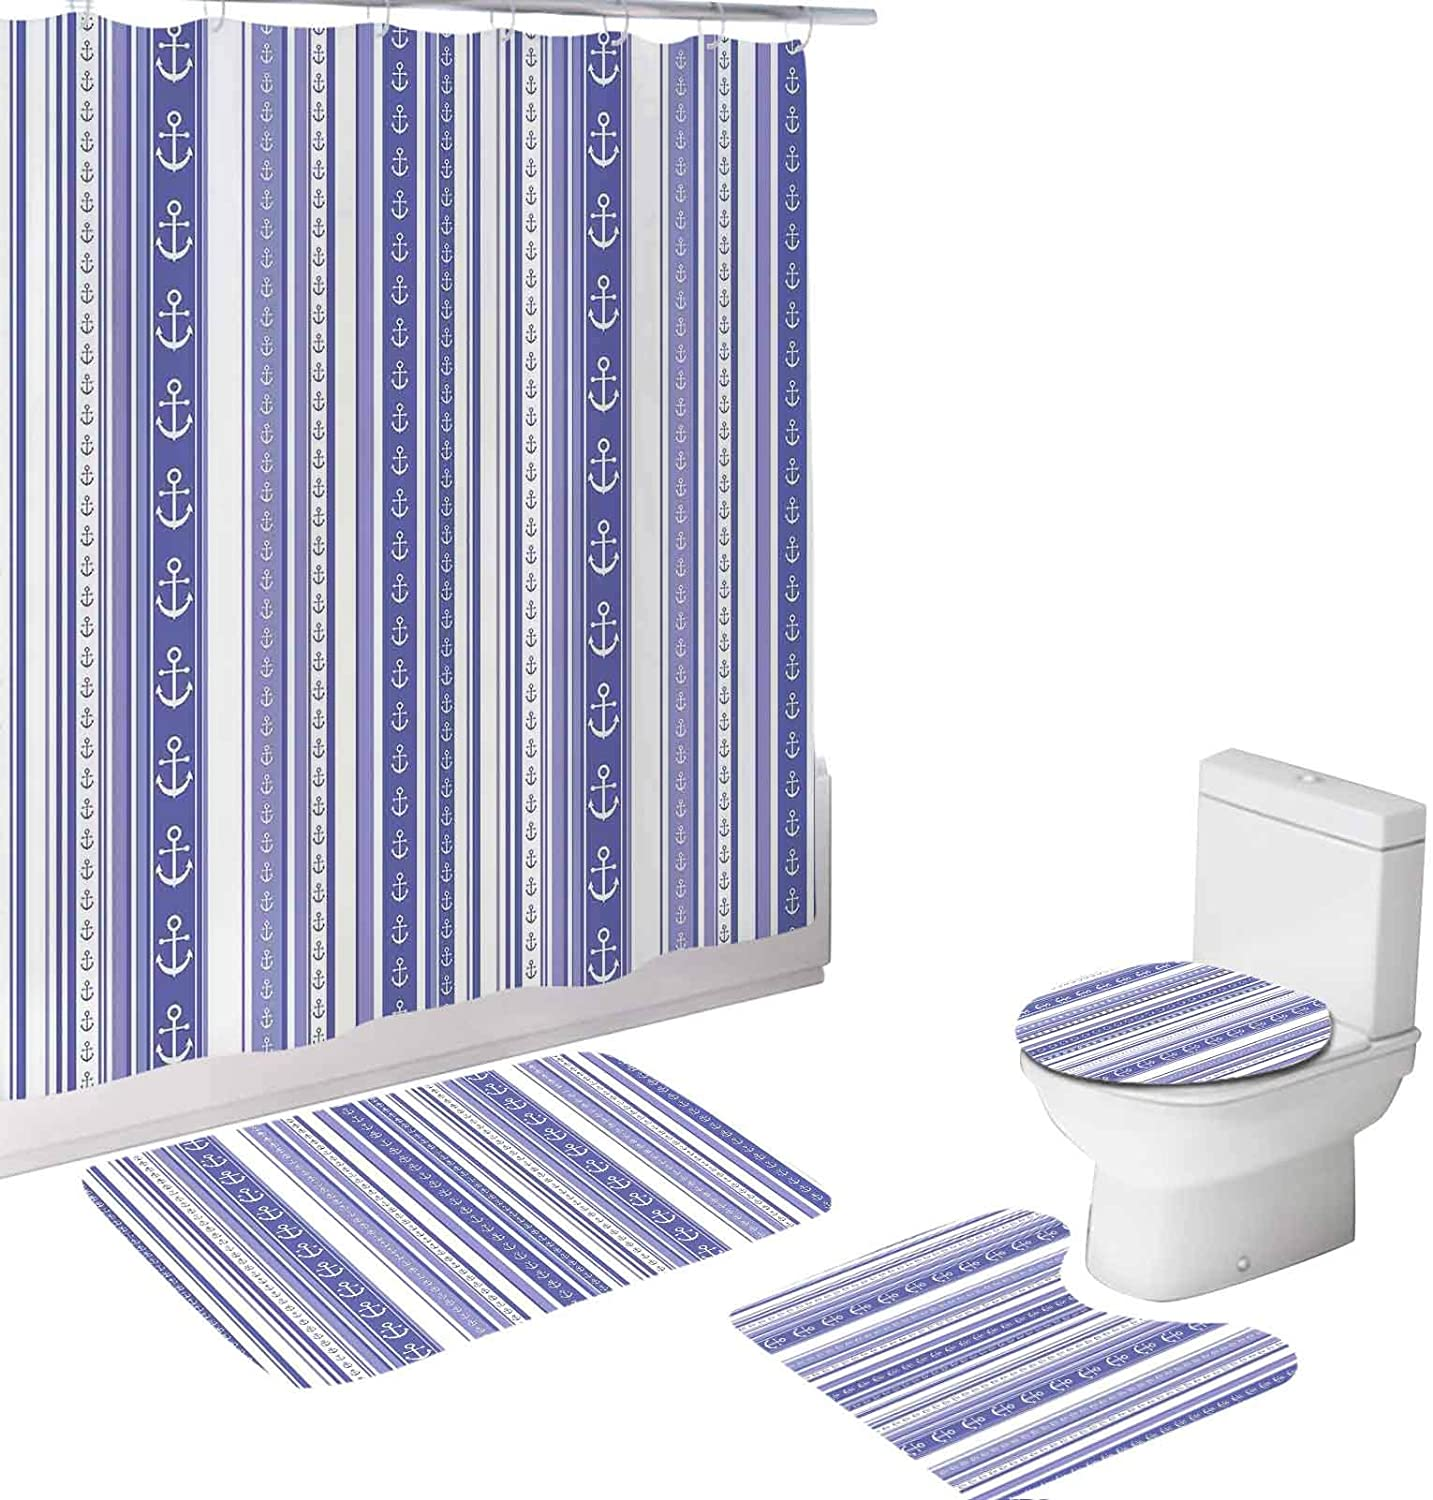 Striped Shower Curtain Sets,Anchor Icons Tape Motifs Sea Life,Shower Curtains with 12 Hooks,Waterproof Bath Curtain (72x72 inch) Lilac Purple